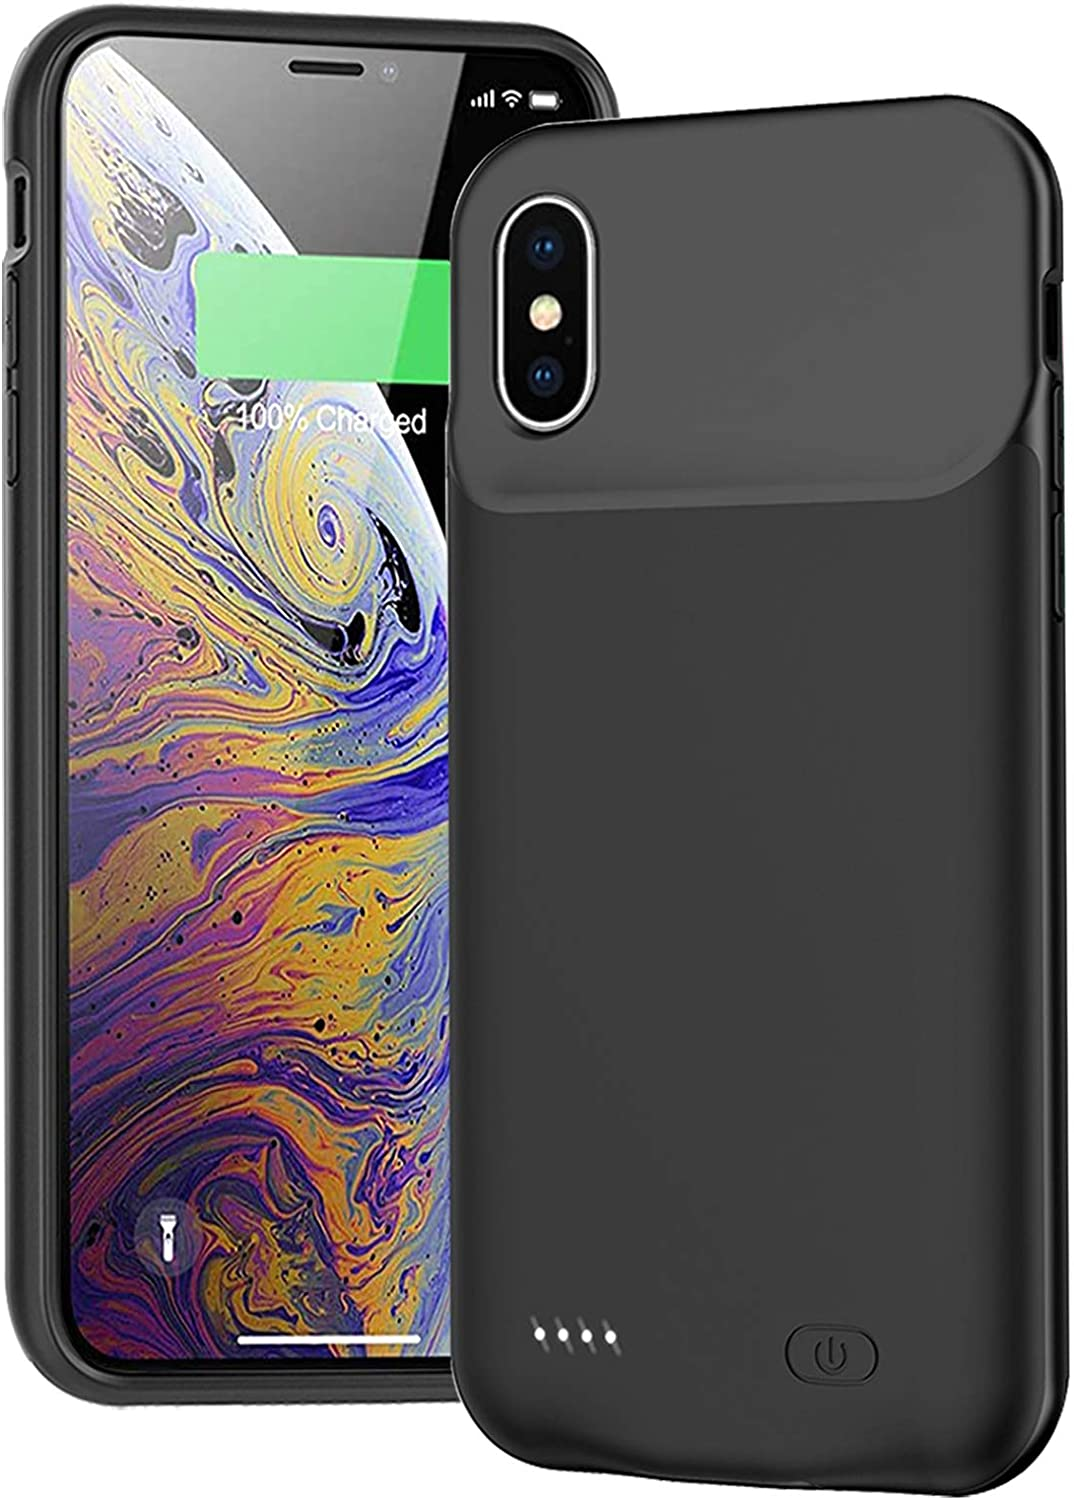 Battery Case for iPhone X/XS, 7000mAh Ultra-Slim Portable Charger Case Rechargeable Battery Pack Protective Backup Charging Case Cover for Apple iPhone X, iPhone Xs (5.8 Inch)-Black